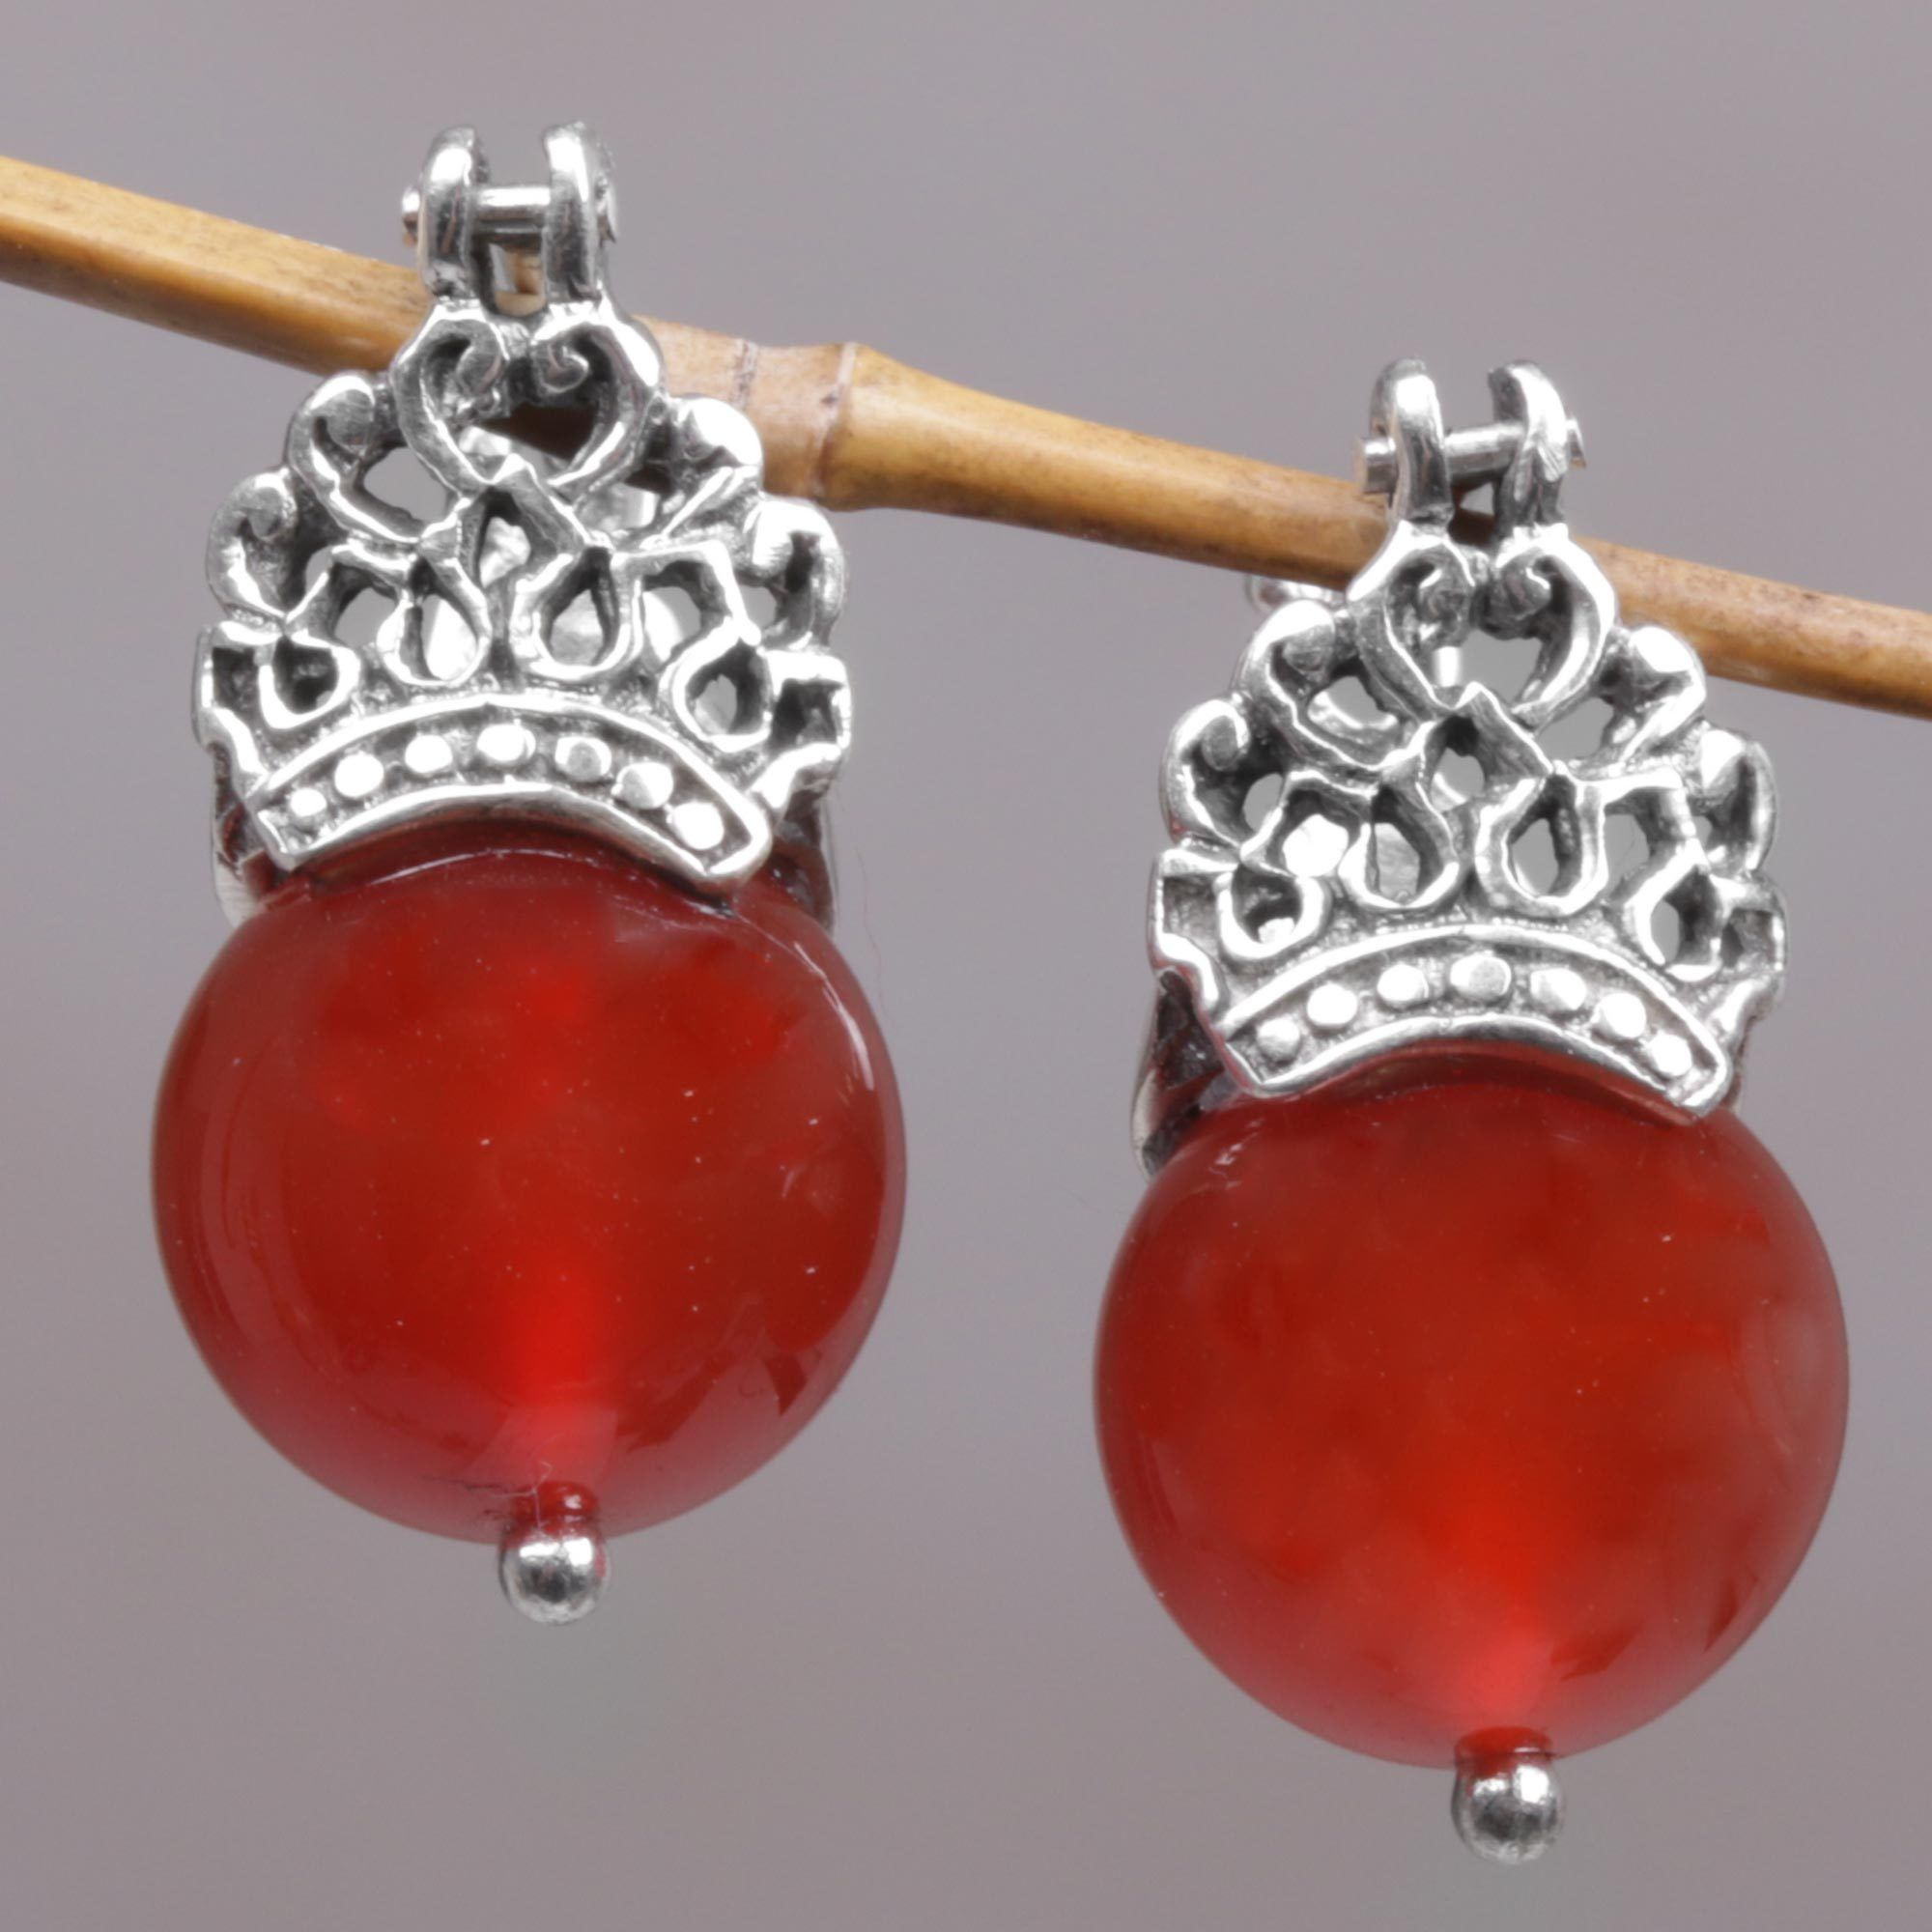 products orange jewelry carnelian earrings balsamroot dark